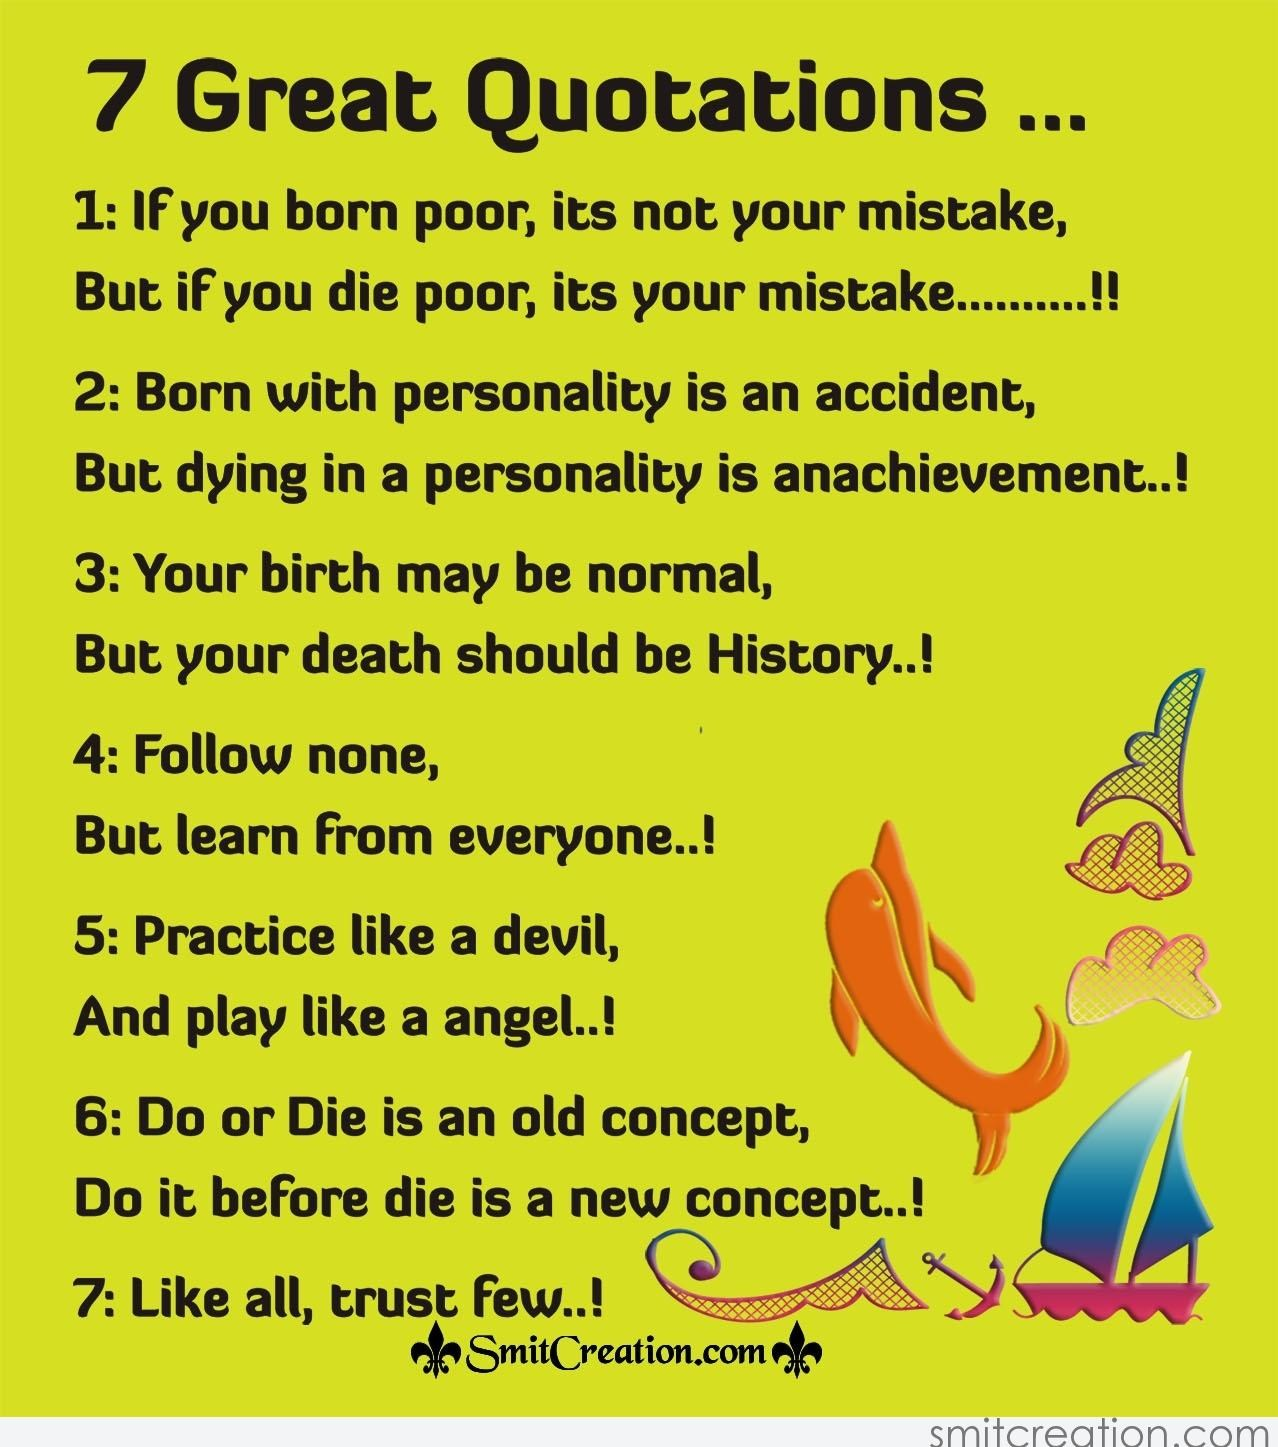 Great Quotations 7 Great Quotations  Smitcreation